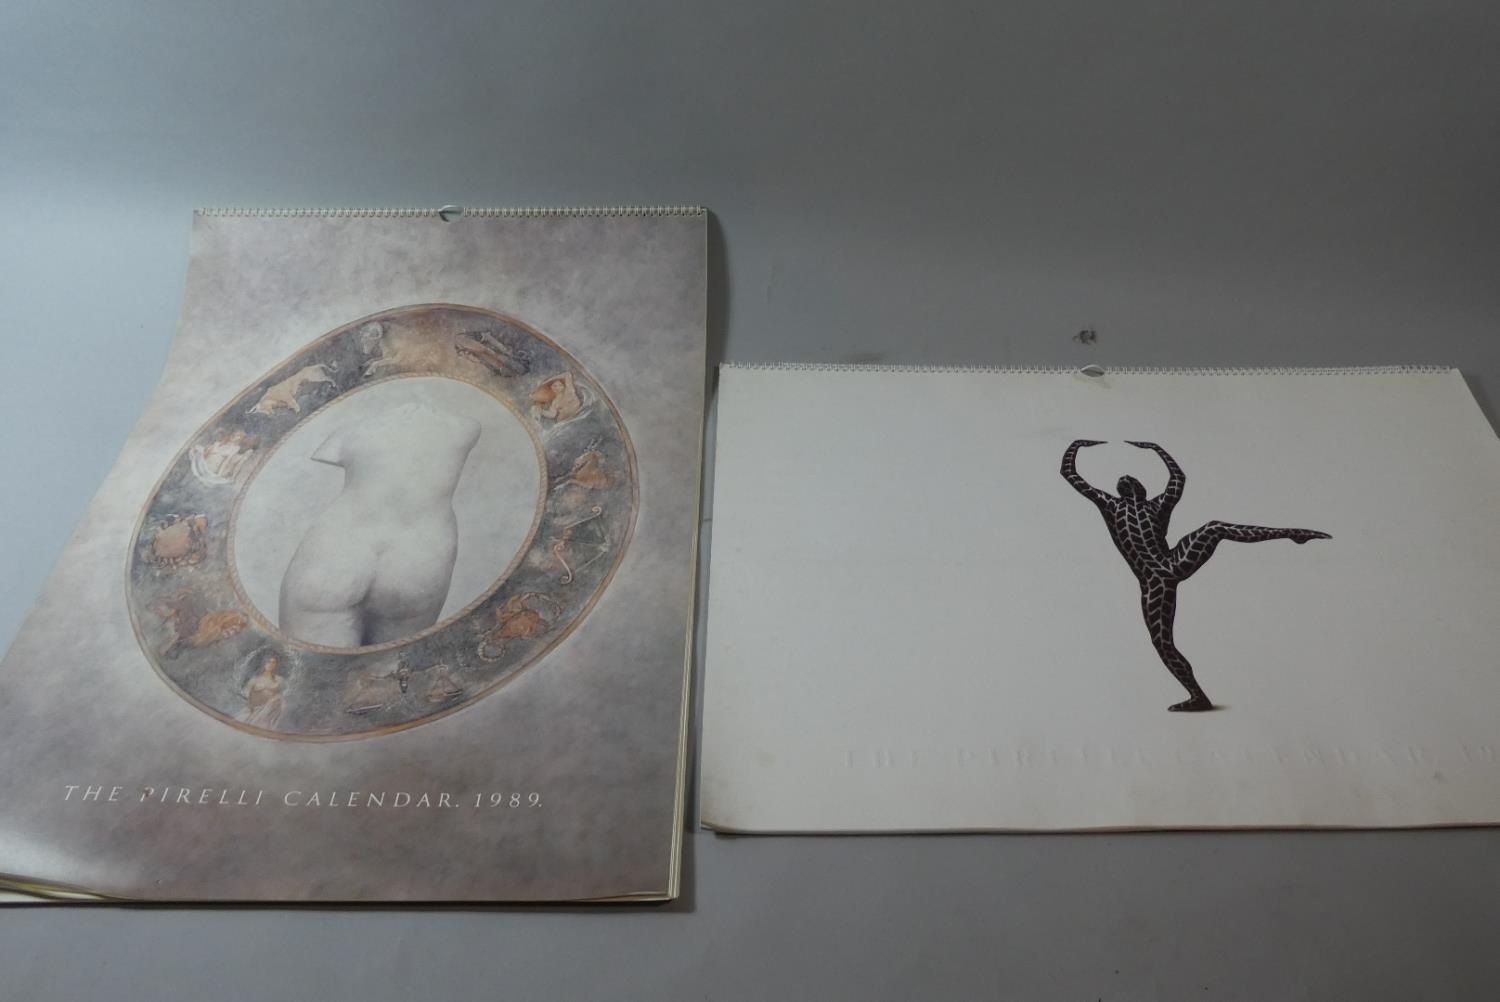 Lot 103 - Two Pirelli Calendars for 1988 and 1989